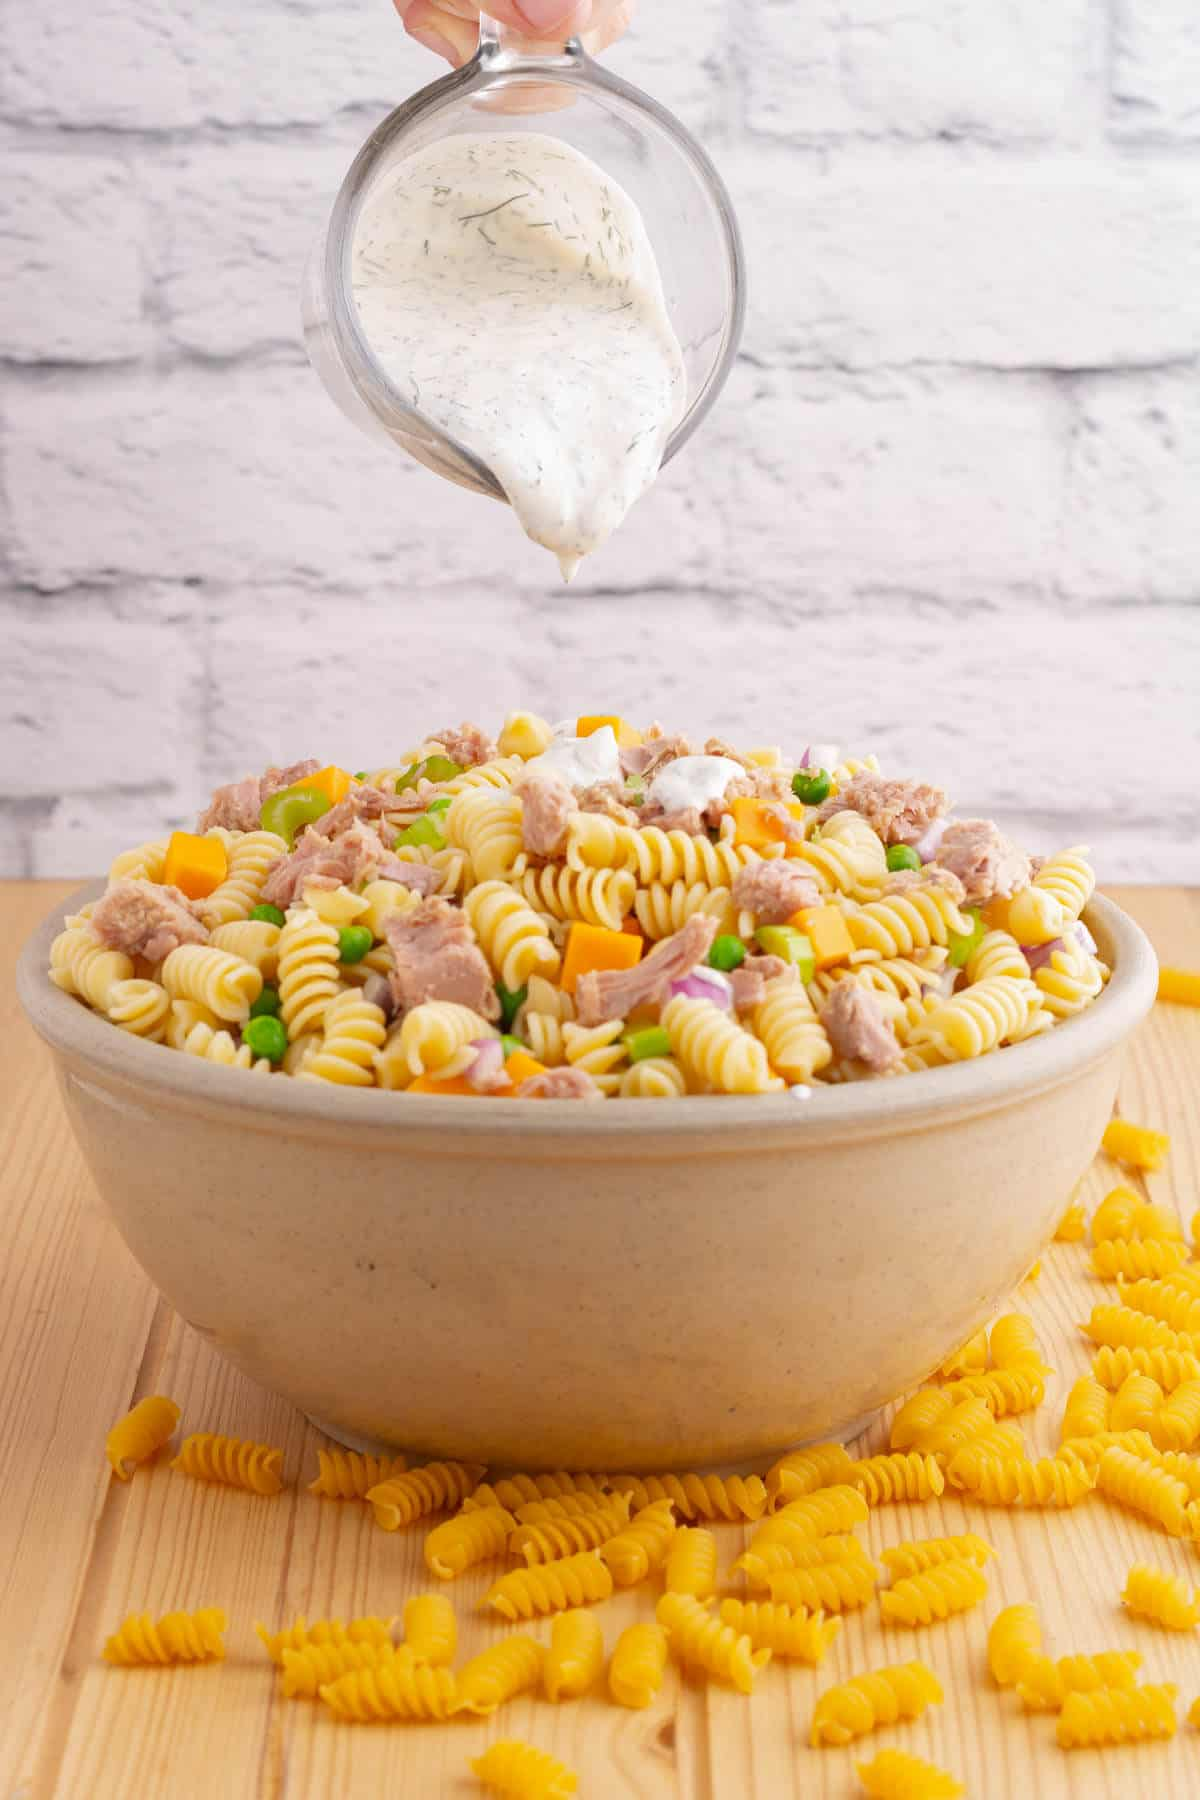 A creamy dressing being poured over a bowl of tuna pasta salad ingredients.